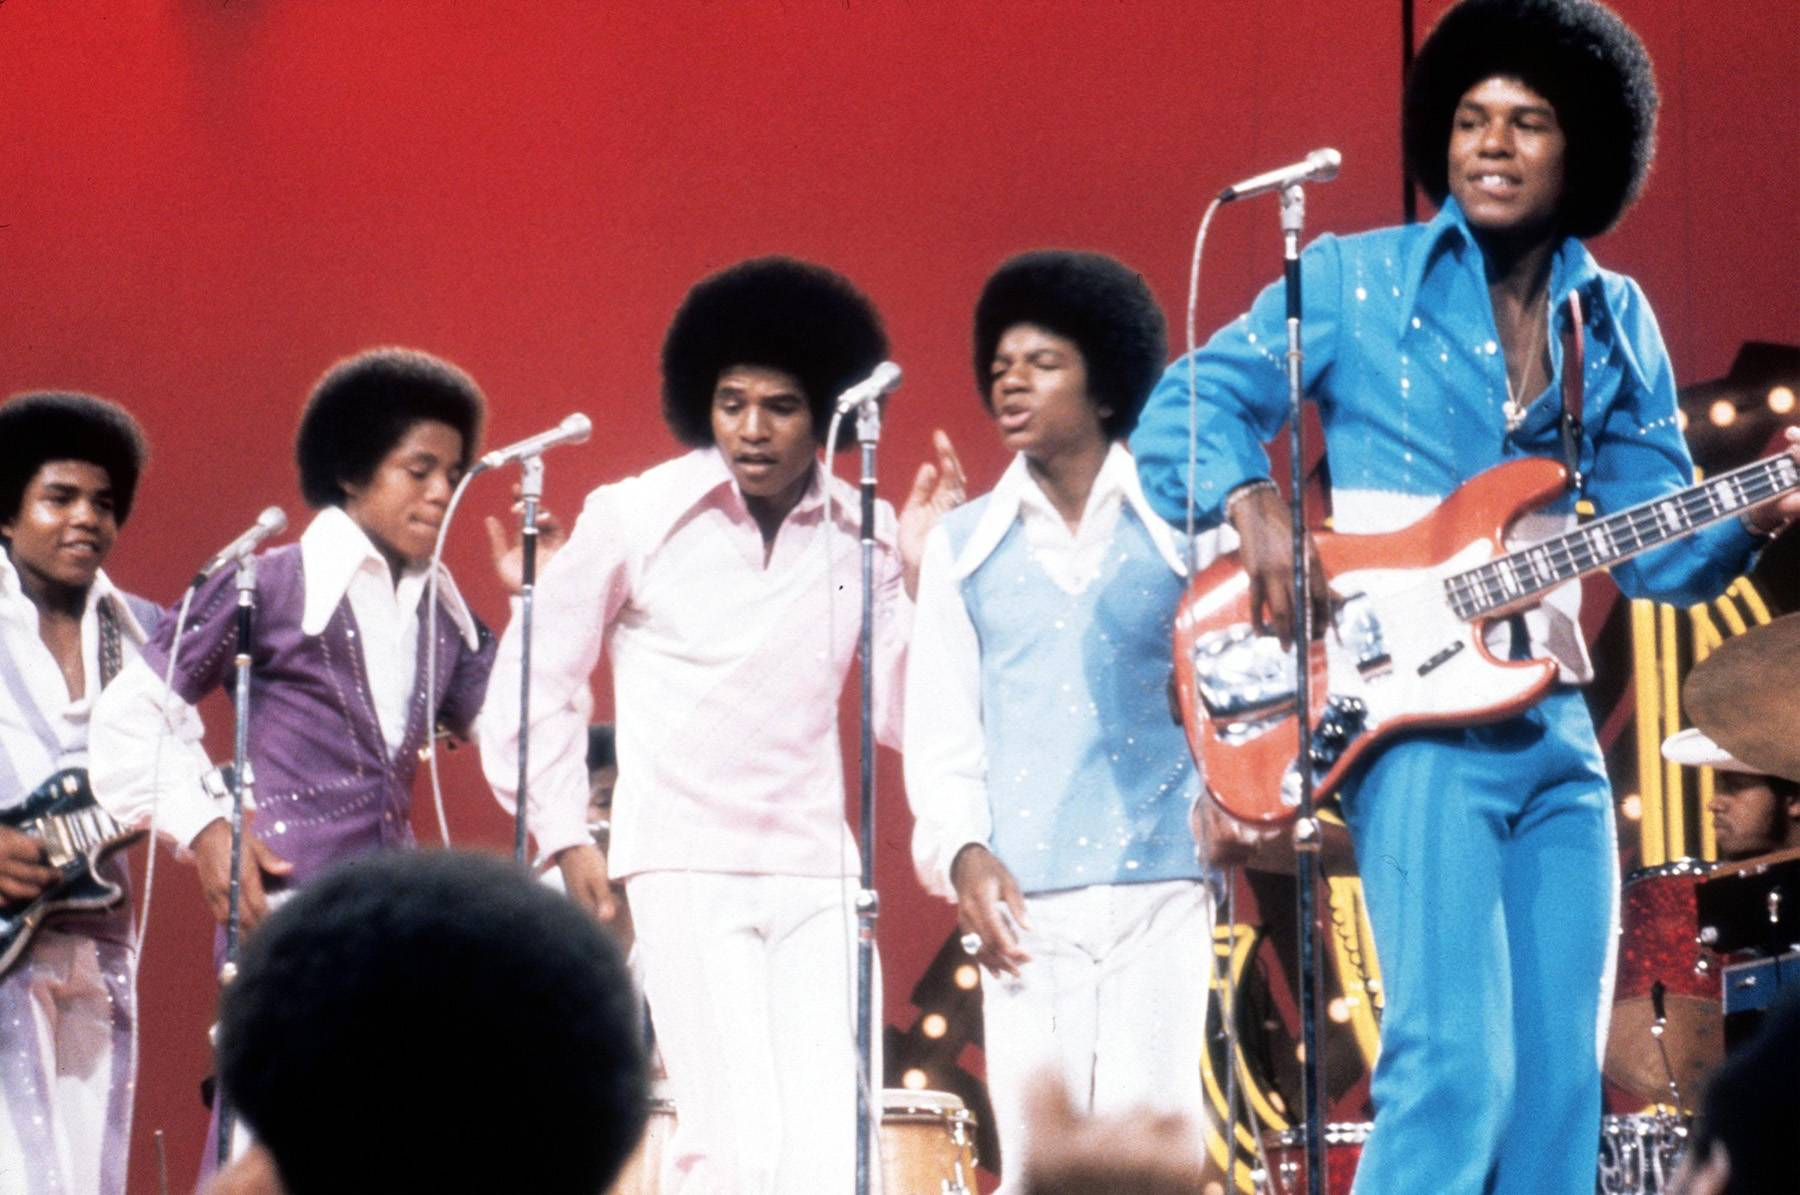 """Doing the Robot on Soul Train - To promote their 1974 hit """"Dancing Machine,"""" the Jackson 5 took the TV stage of Soul Train to perform. Little did the audience know that a teenage Mike had been studying the famous moves of Slim the Robot, a member of the pioneering dance troupe the Lockers. They (and millions across America) witnessed Michael's street-dance skills during the song's breakdown segment as he proceeded to lock, swivel and slide his way to the front of the stage... and into hip hop history."""